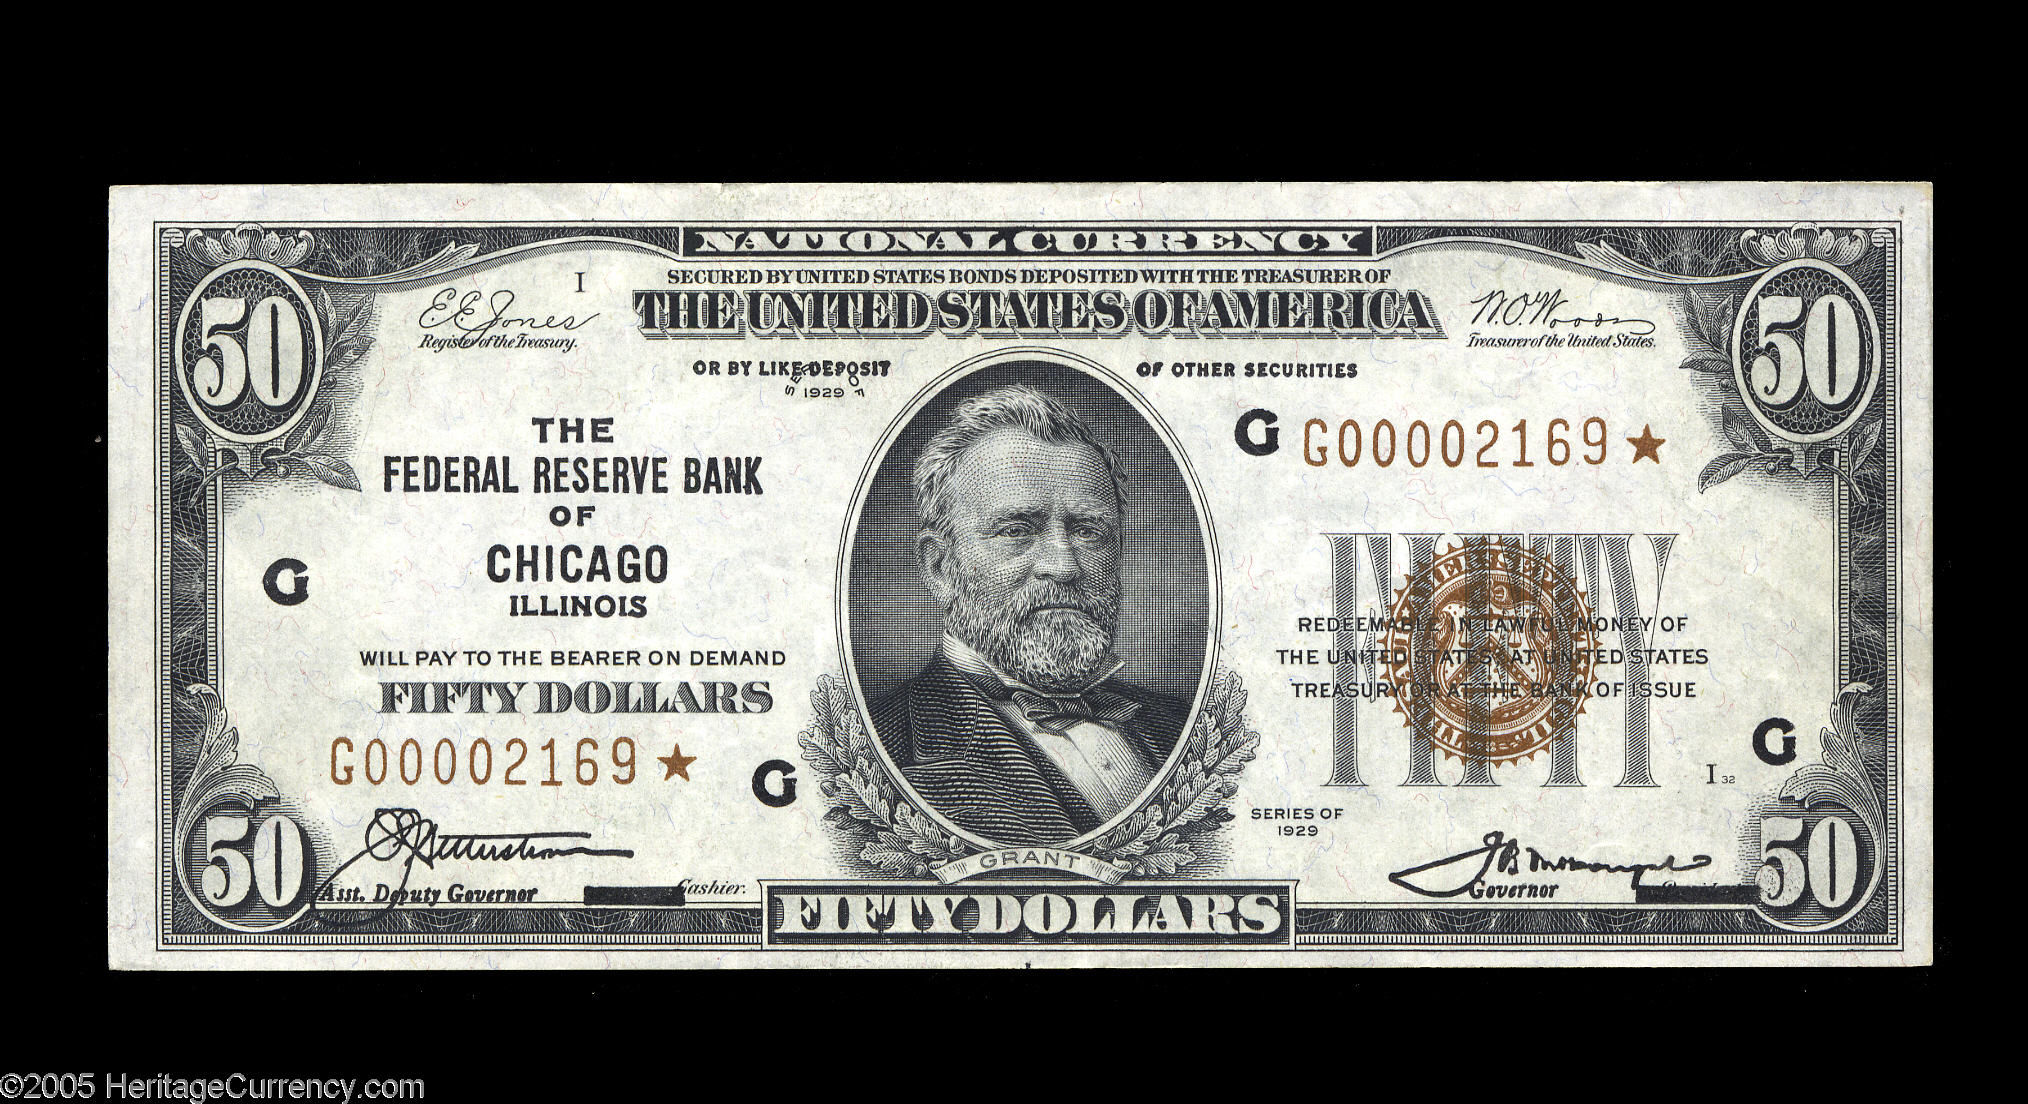 Fr. 1880-G* 1929 $50 Federal Reserve Bank Note Star from Chicago - Heritage Auctions:  September 23, 2005 - Extremely Fine Sold for $6,900